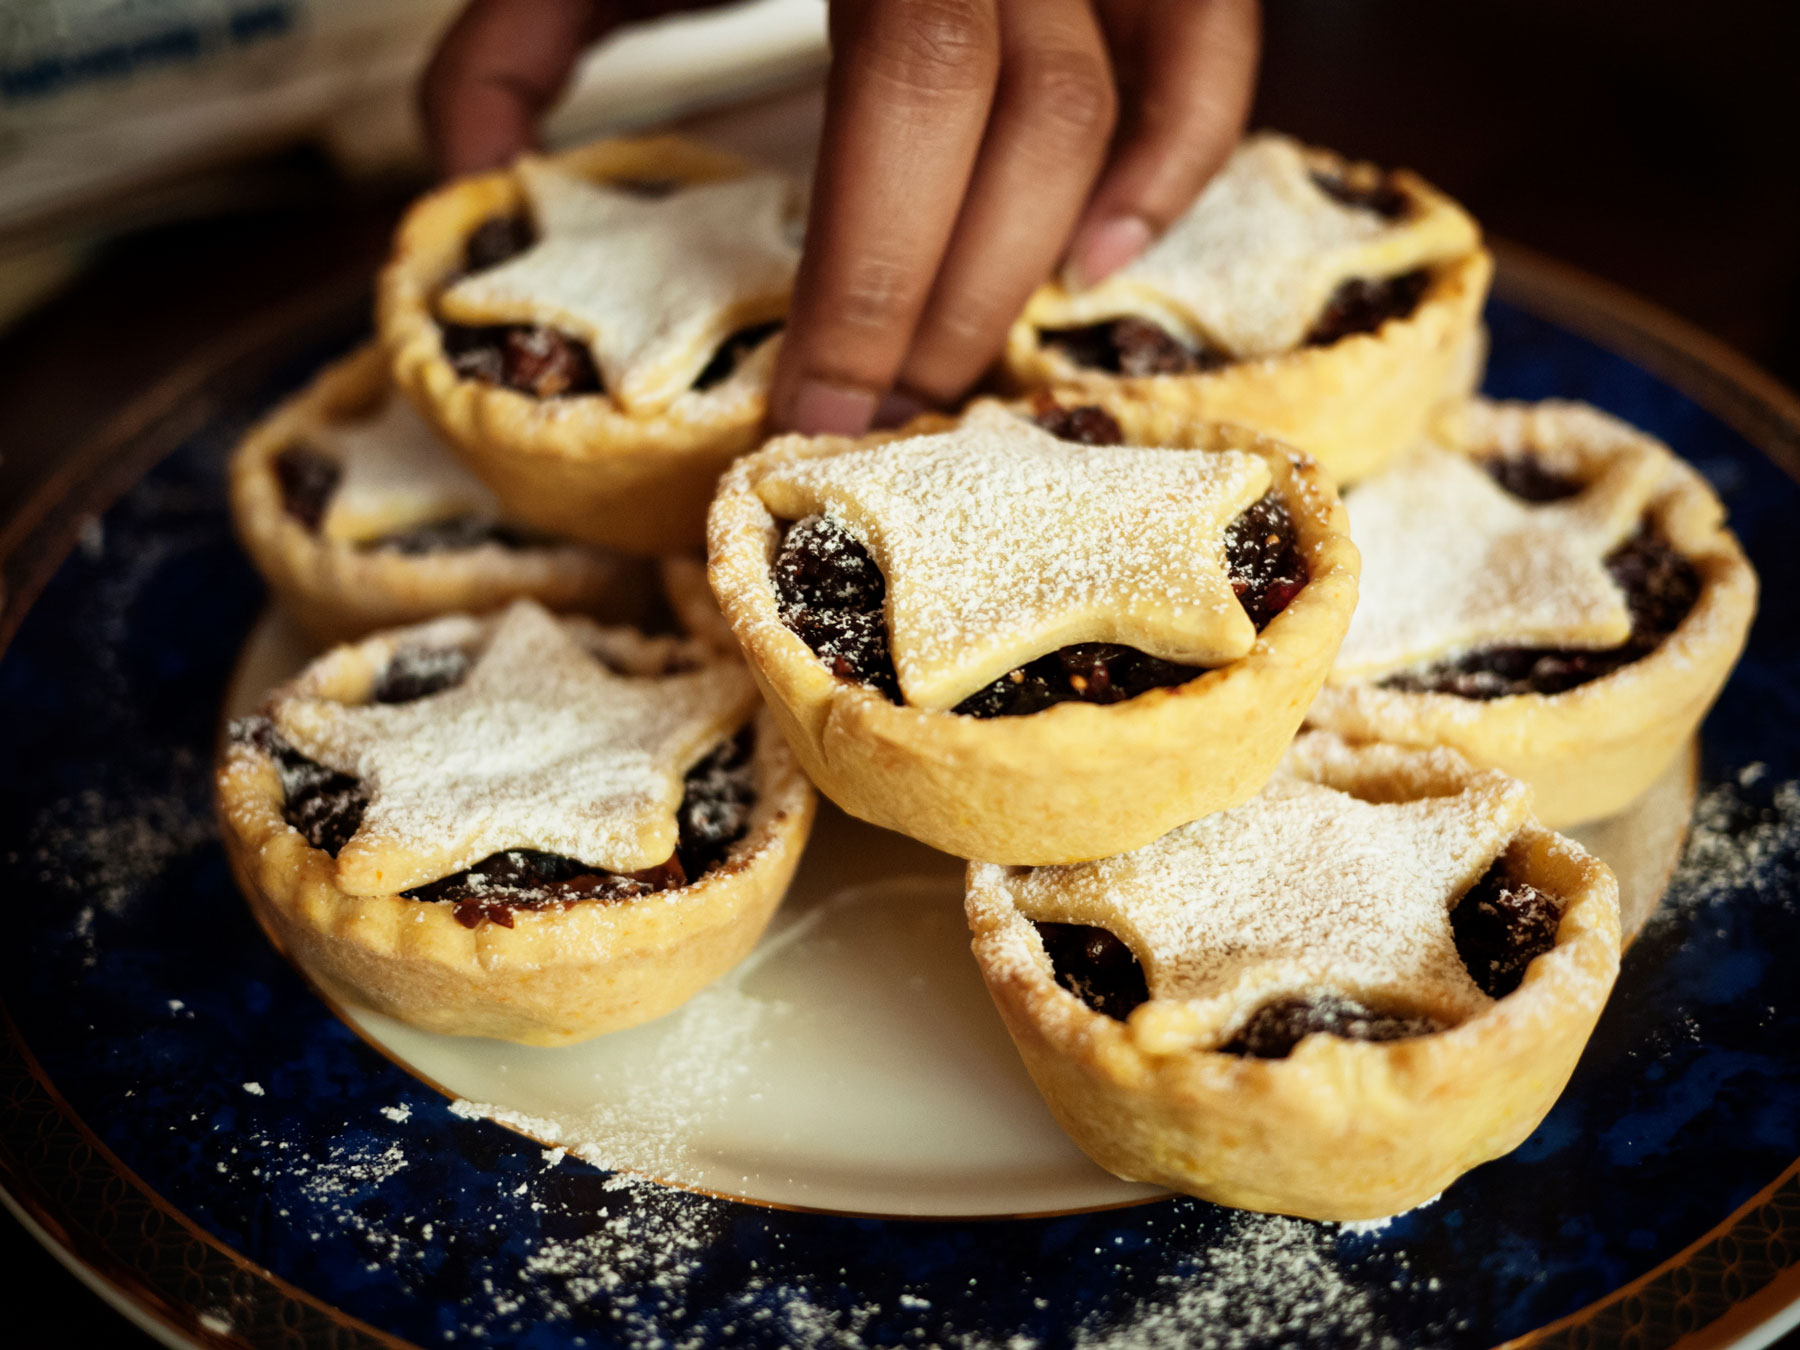 A dish filled with mini, starred mince pies.